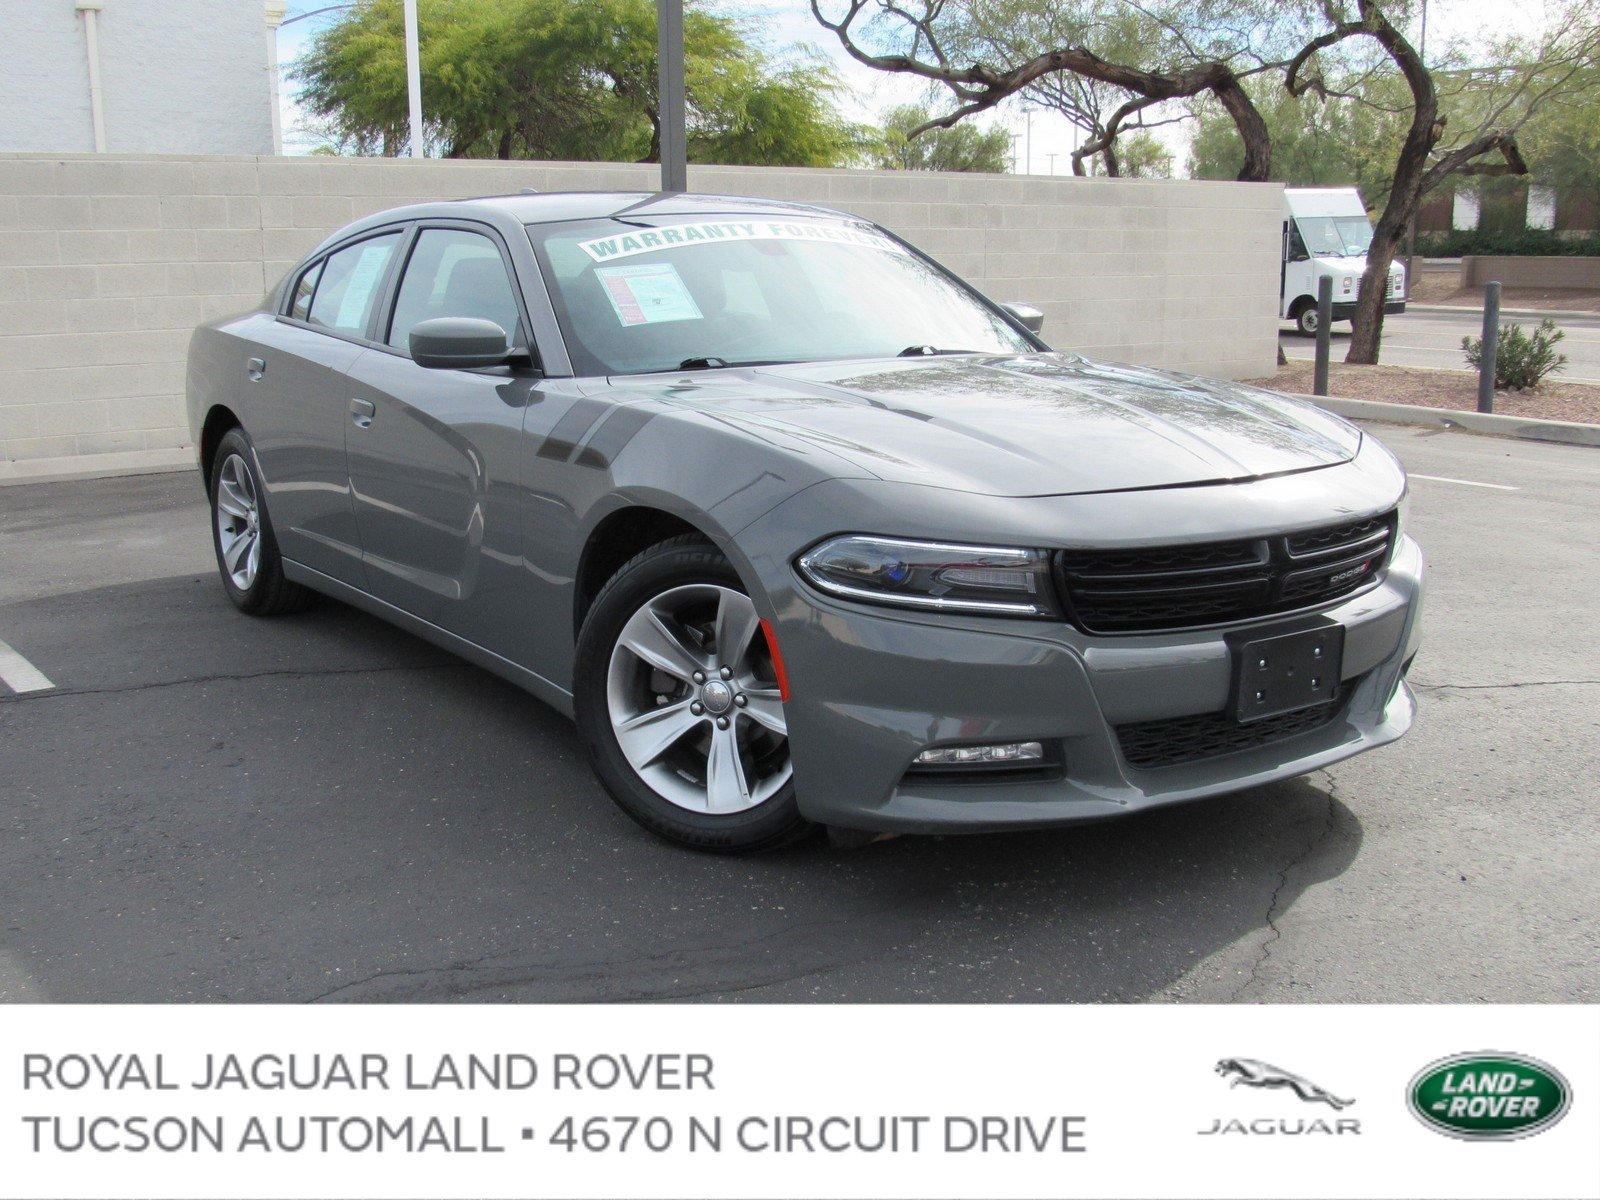 Pre Owned 2017 Dodge Charger SXT Sedan in Tucson PD